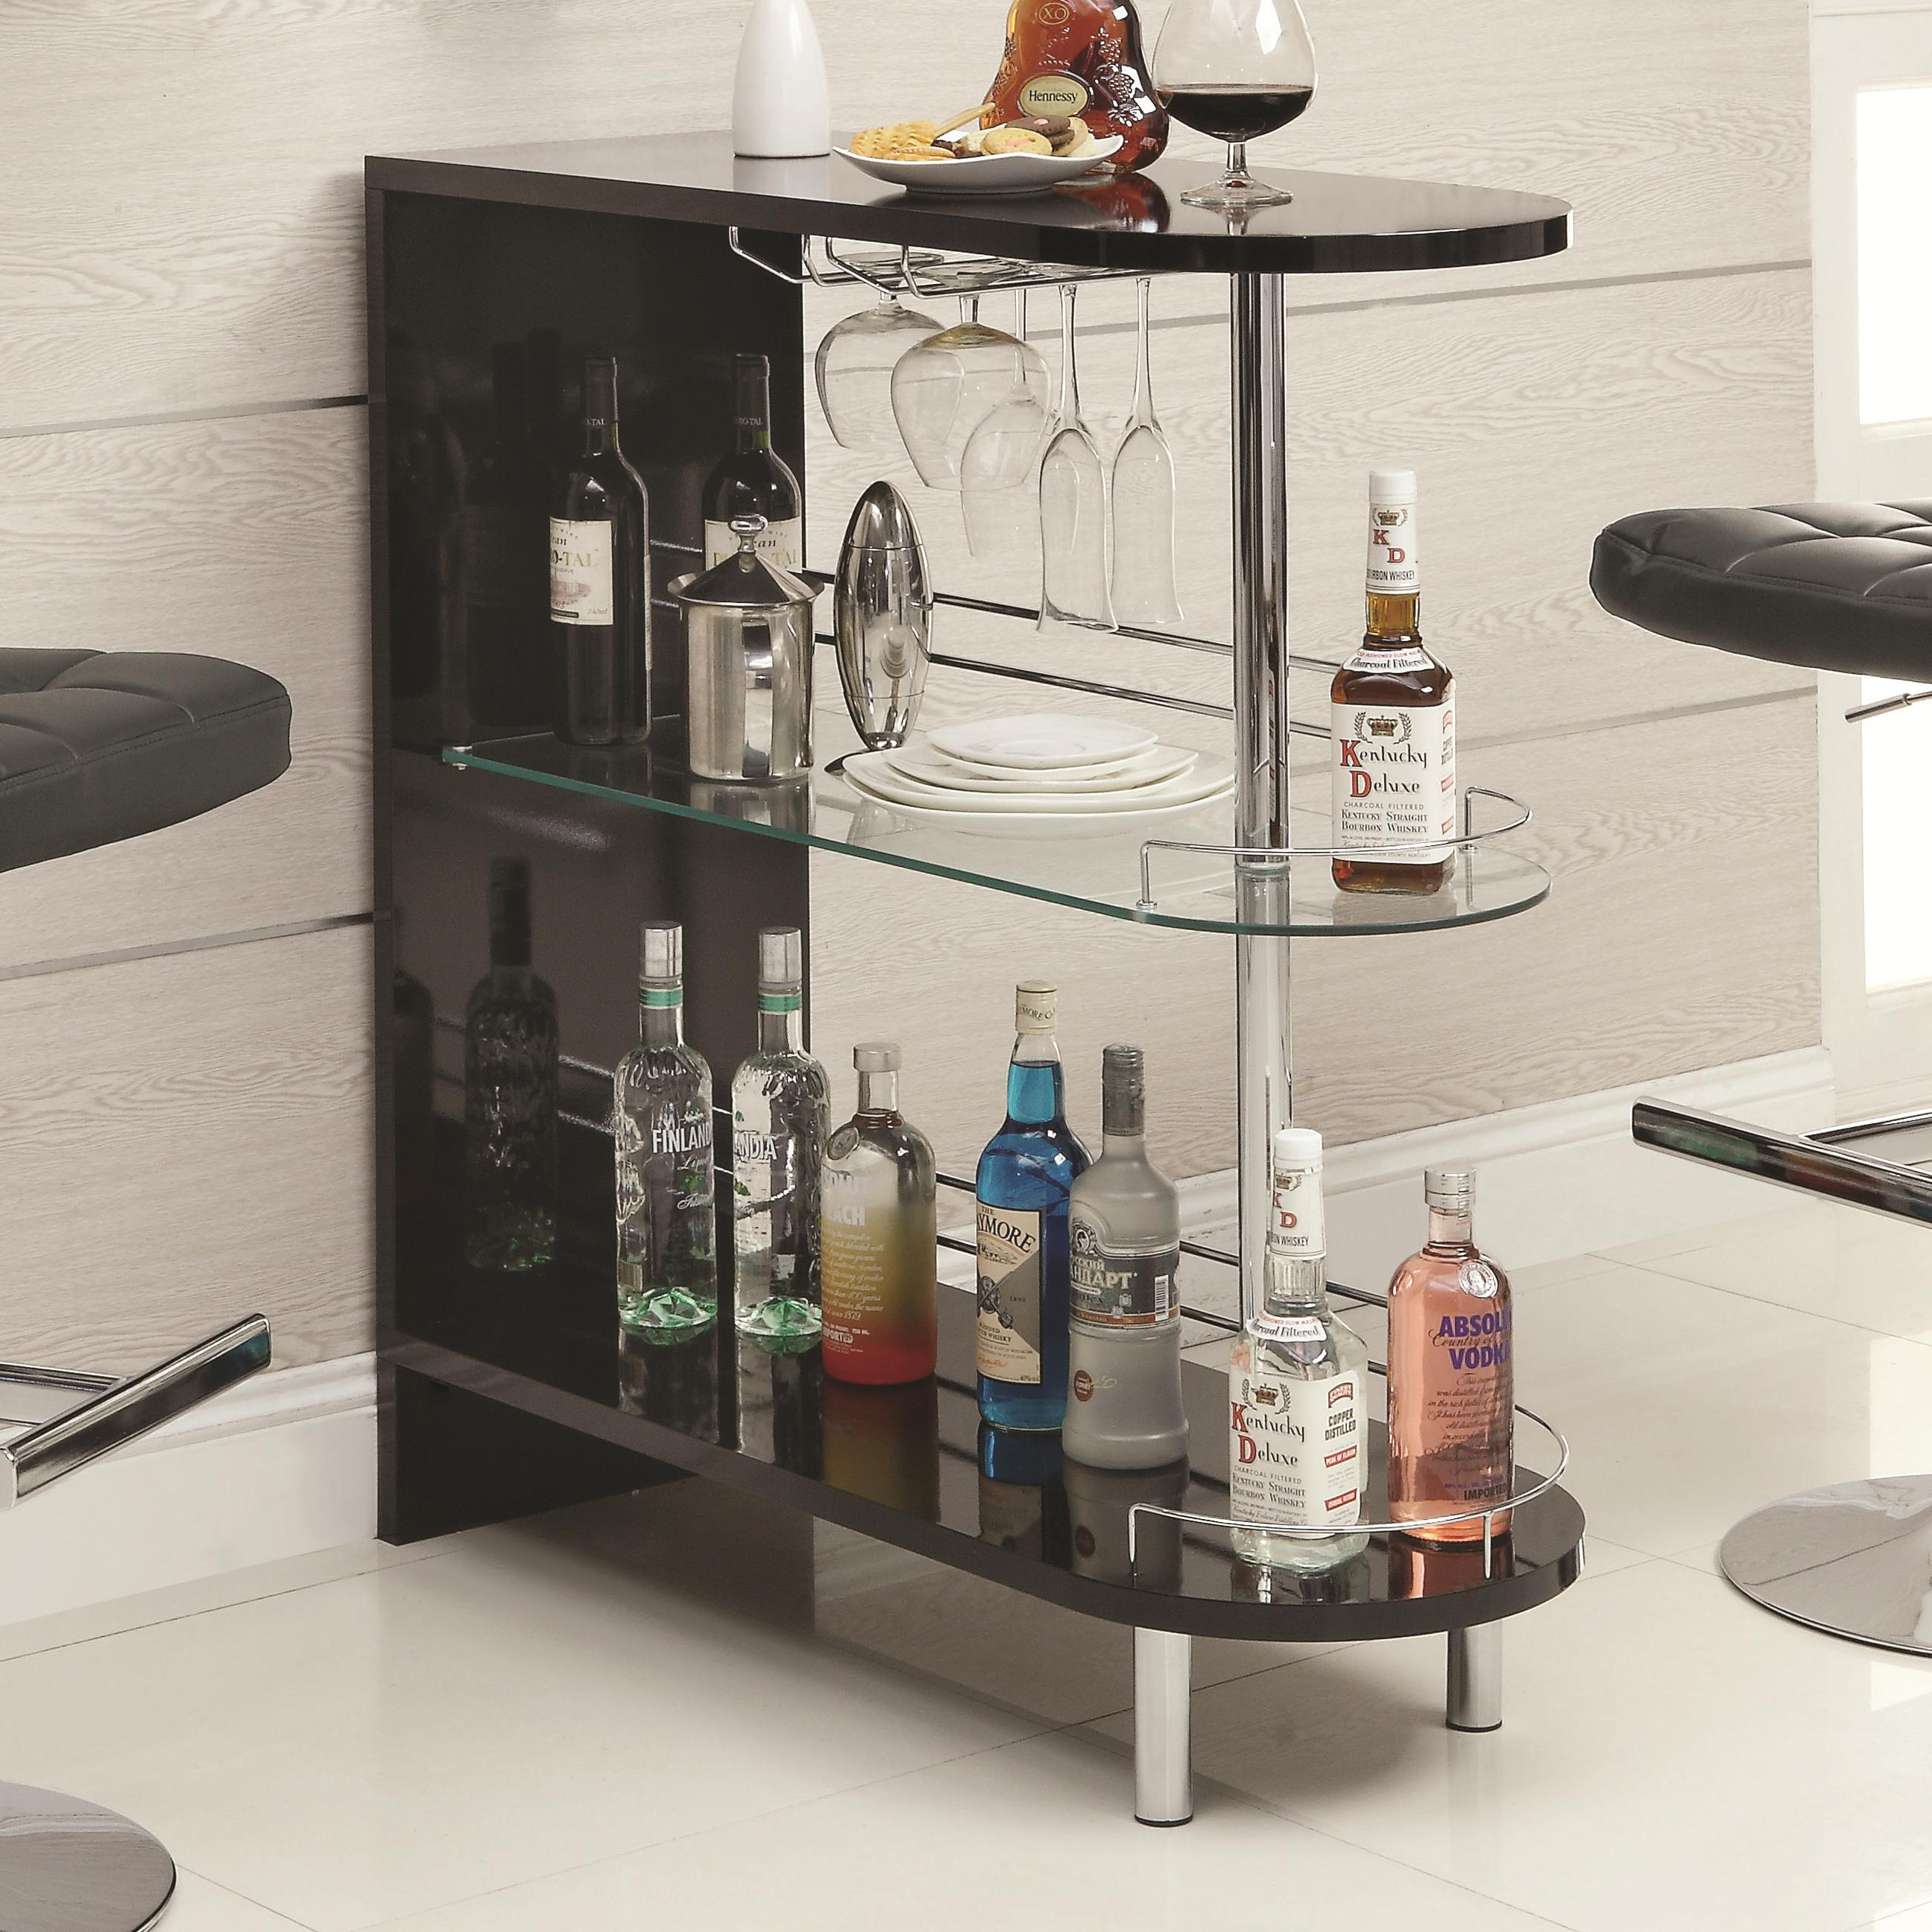 Coaster Bar Units and Bar Tables Black Bar Table - Item Number 101063 & Coaster Bar Units and Bar Tables Contemporary Black Bar Table ...